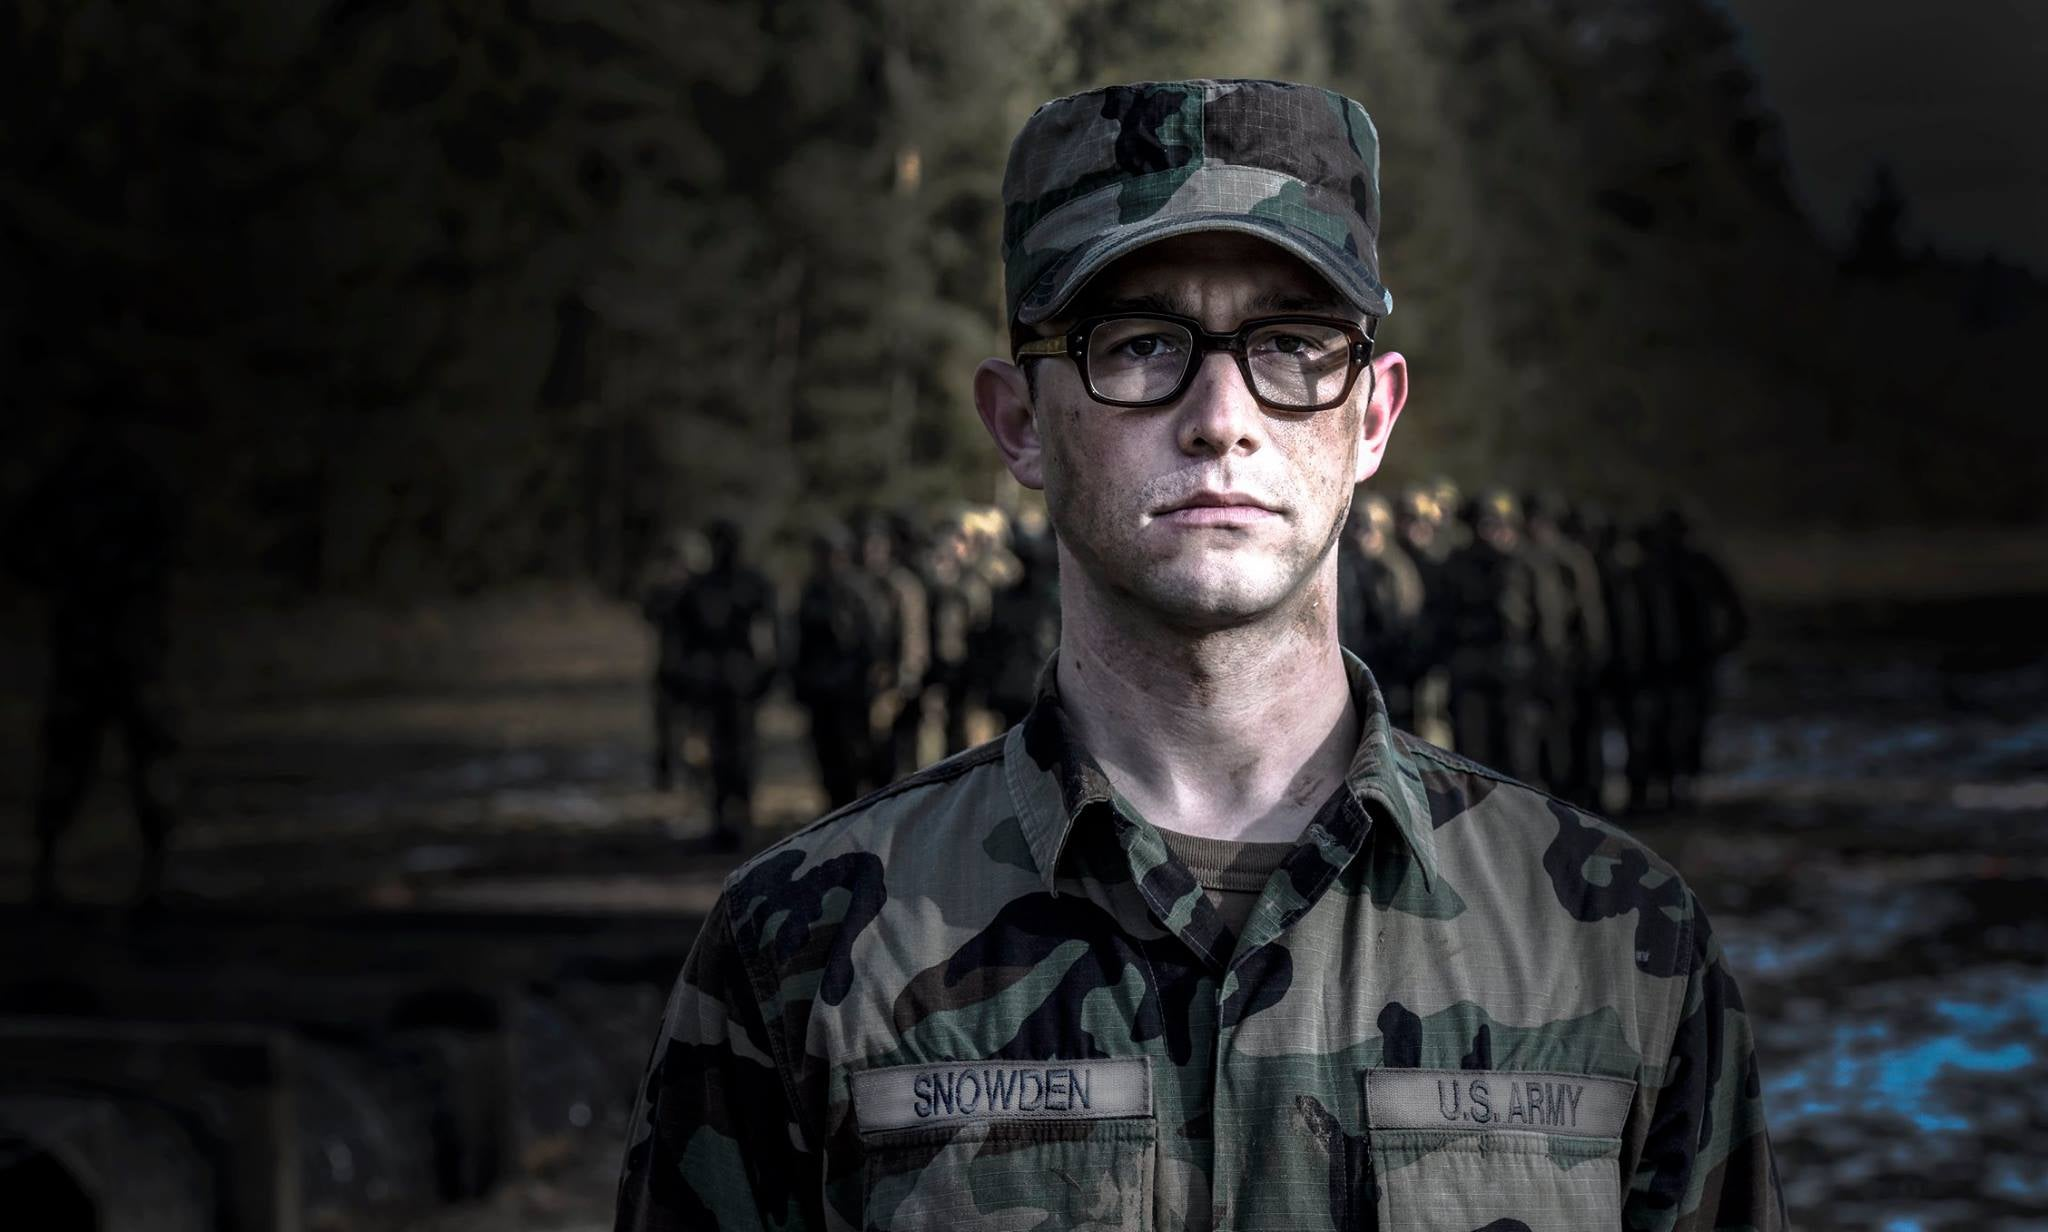 Snowden - latest news, breaking stories and comment - The Independent